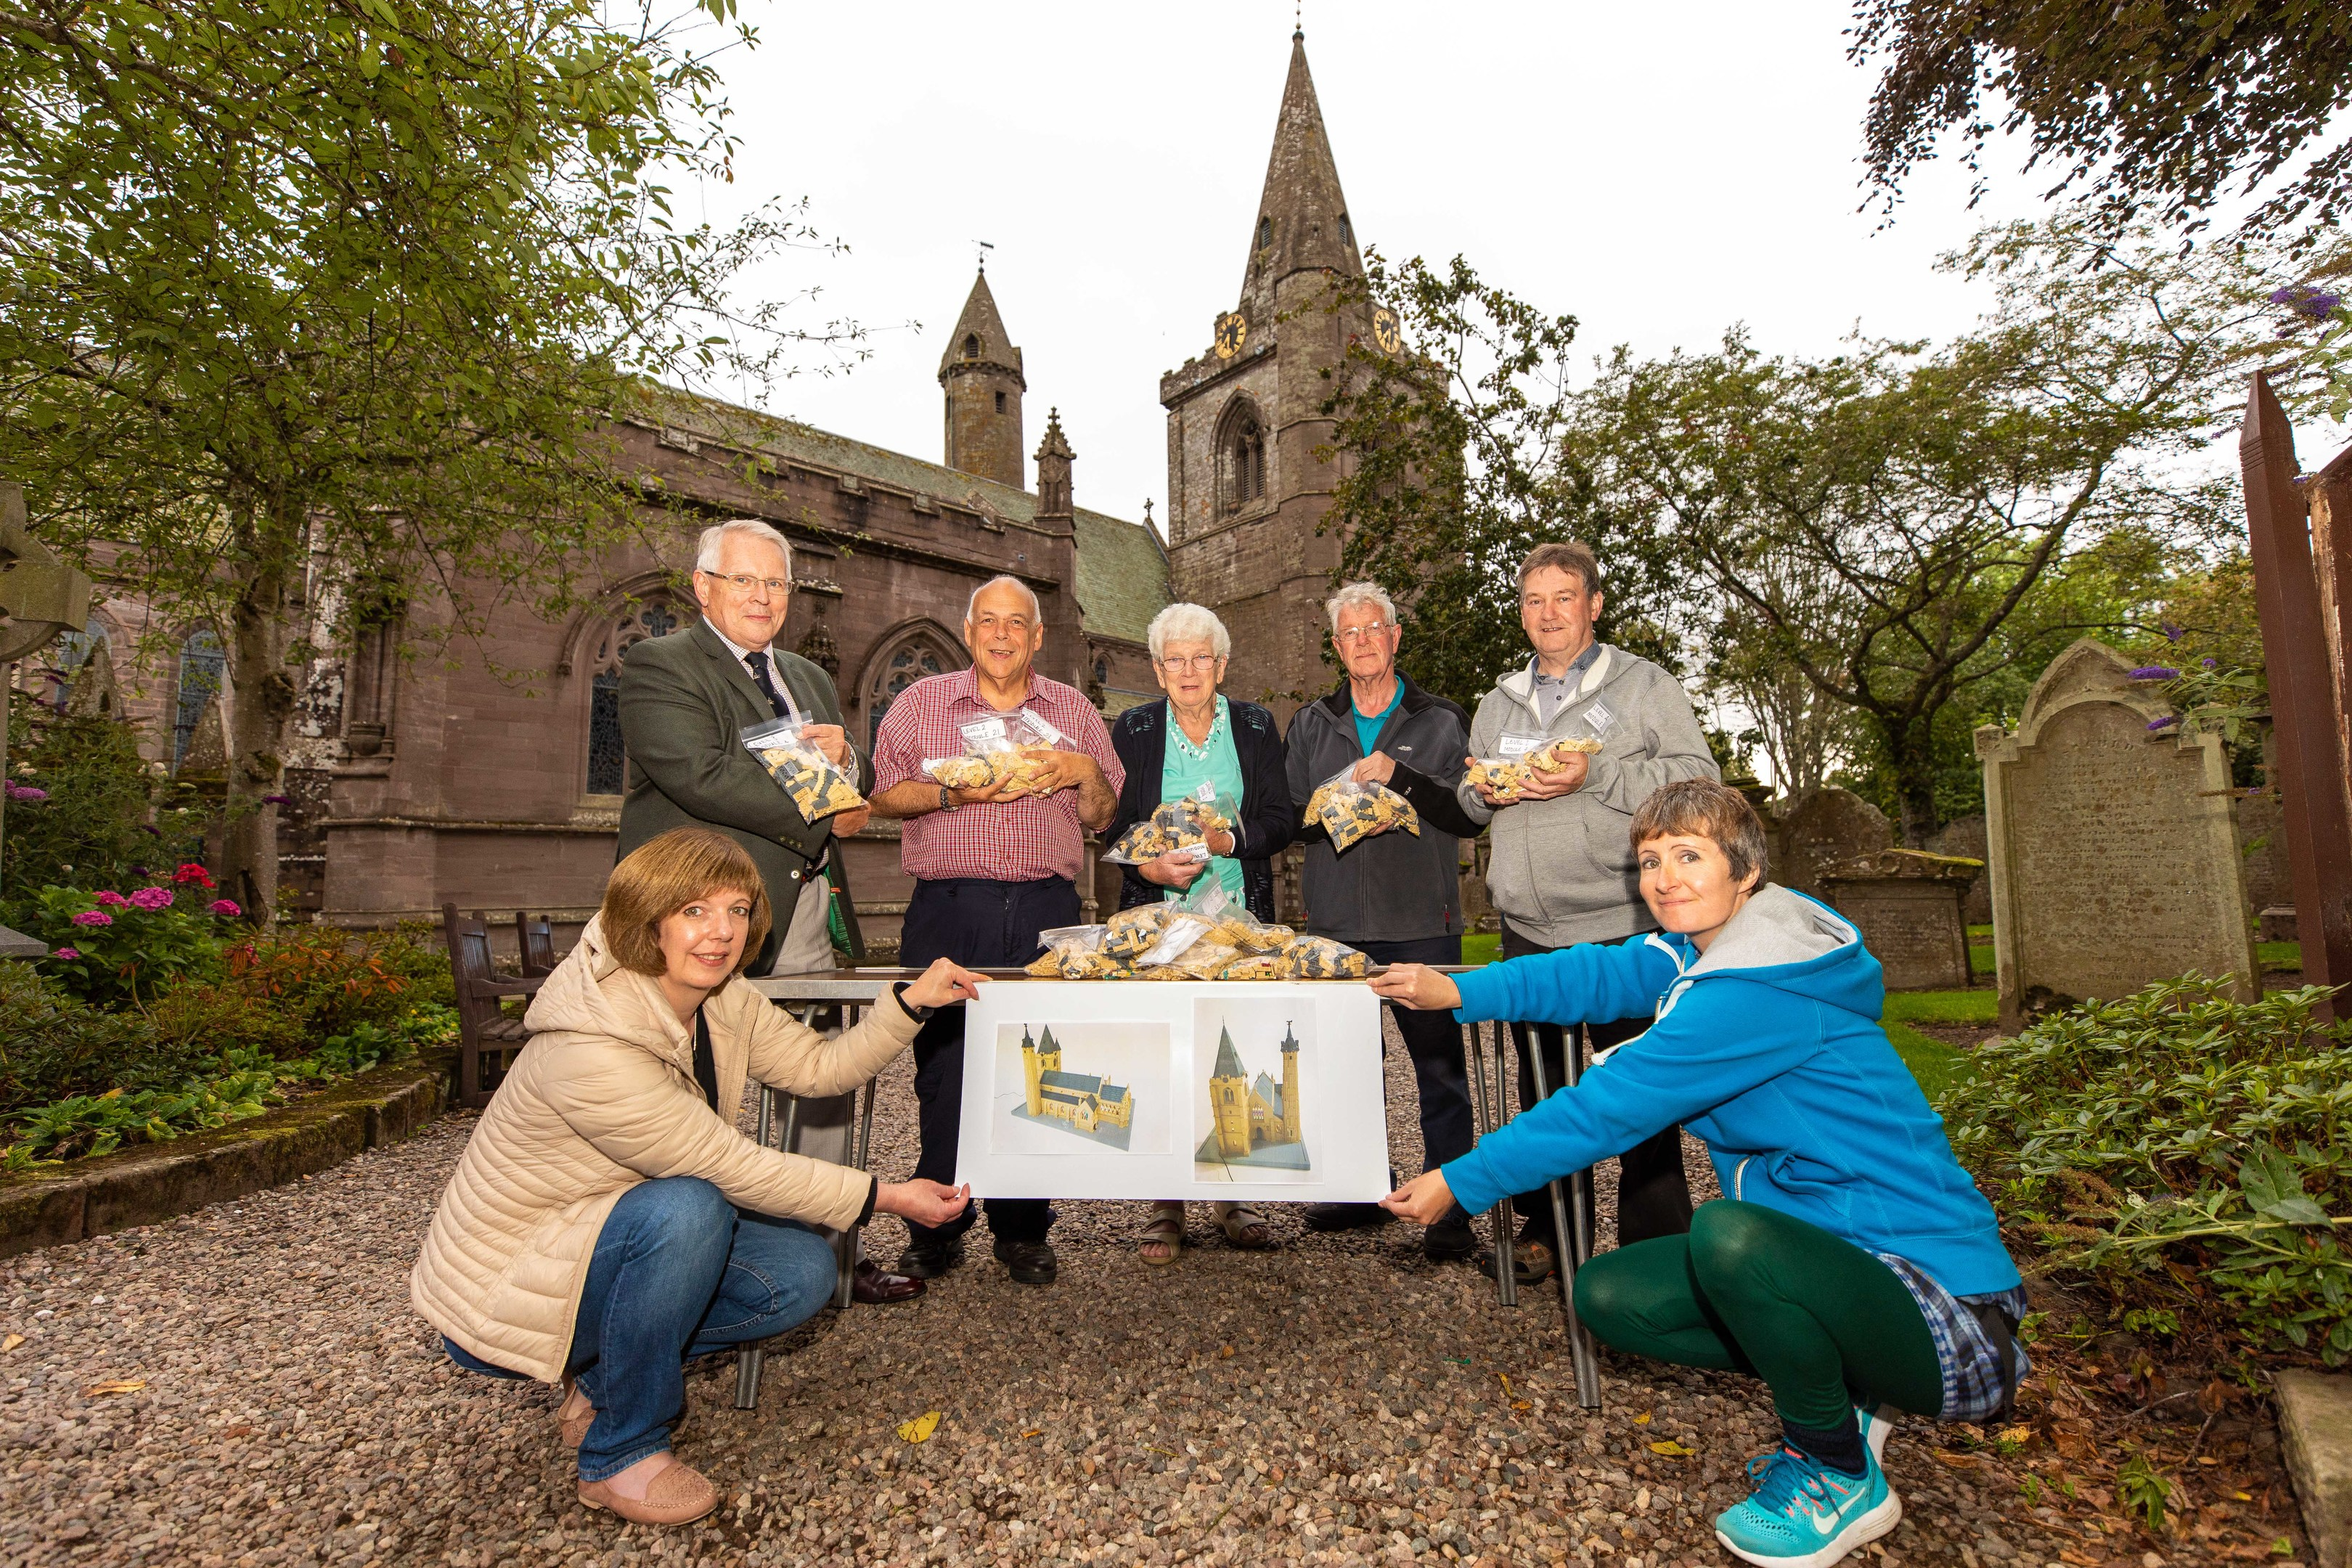 Claire Scrimgeour, Stanley Callaghan, Steve Dempsey, Irene Gillies, George Mitchell, Gordon Strachan and Caitlin McIlroy with the lego pieces to build the Lego Brechin Cathedral.